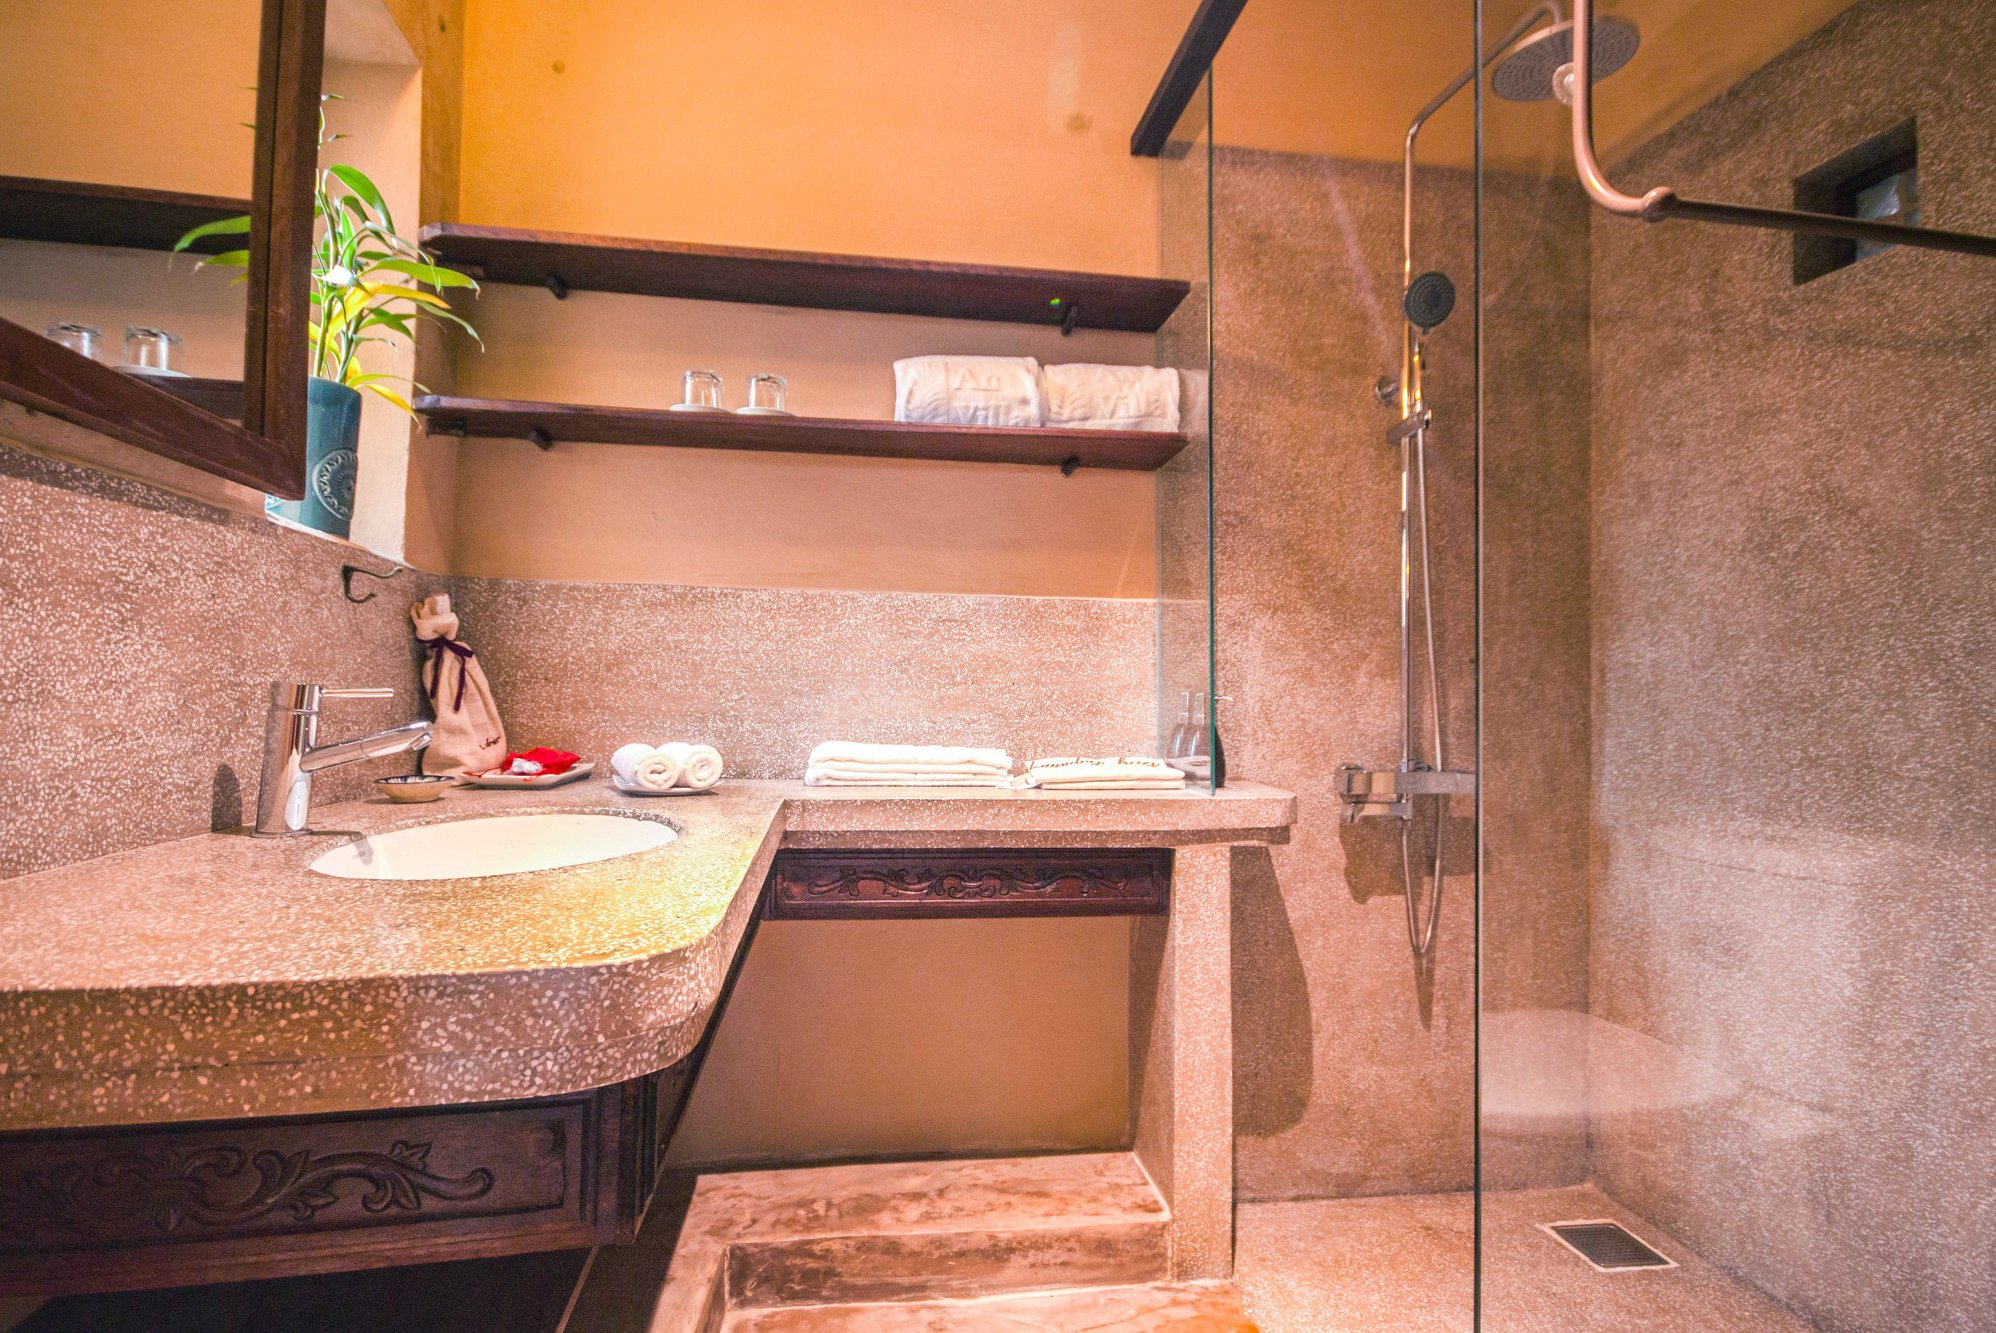 Cultivating-Calm-An-Villa-Resort-Bathroom.jpg